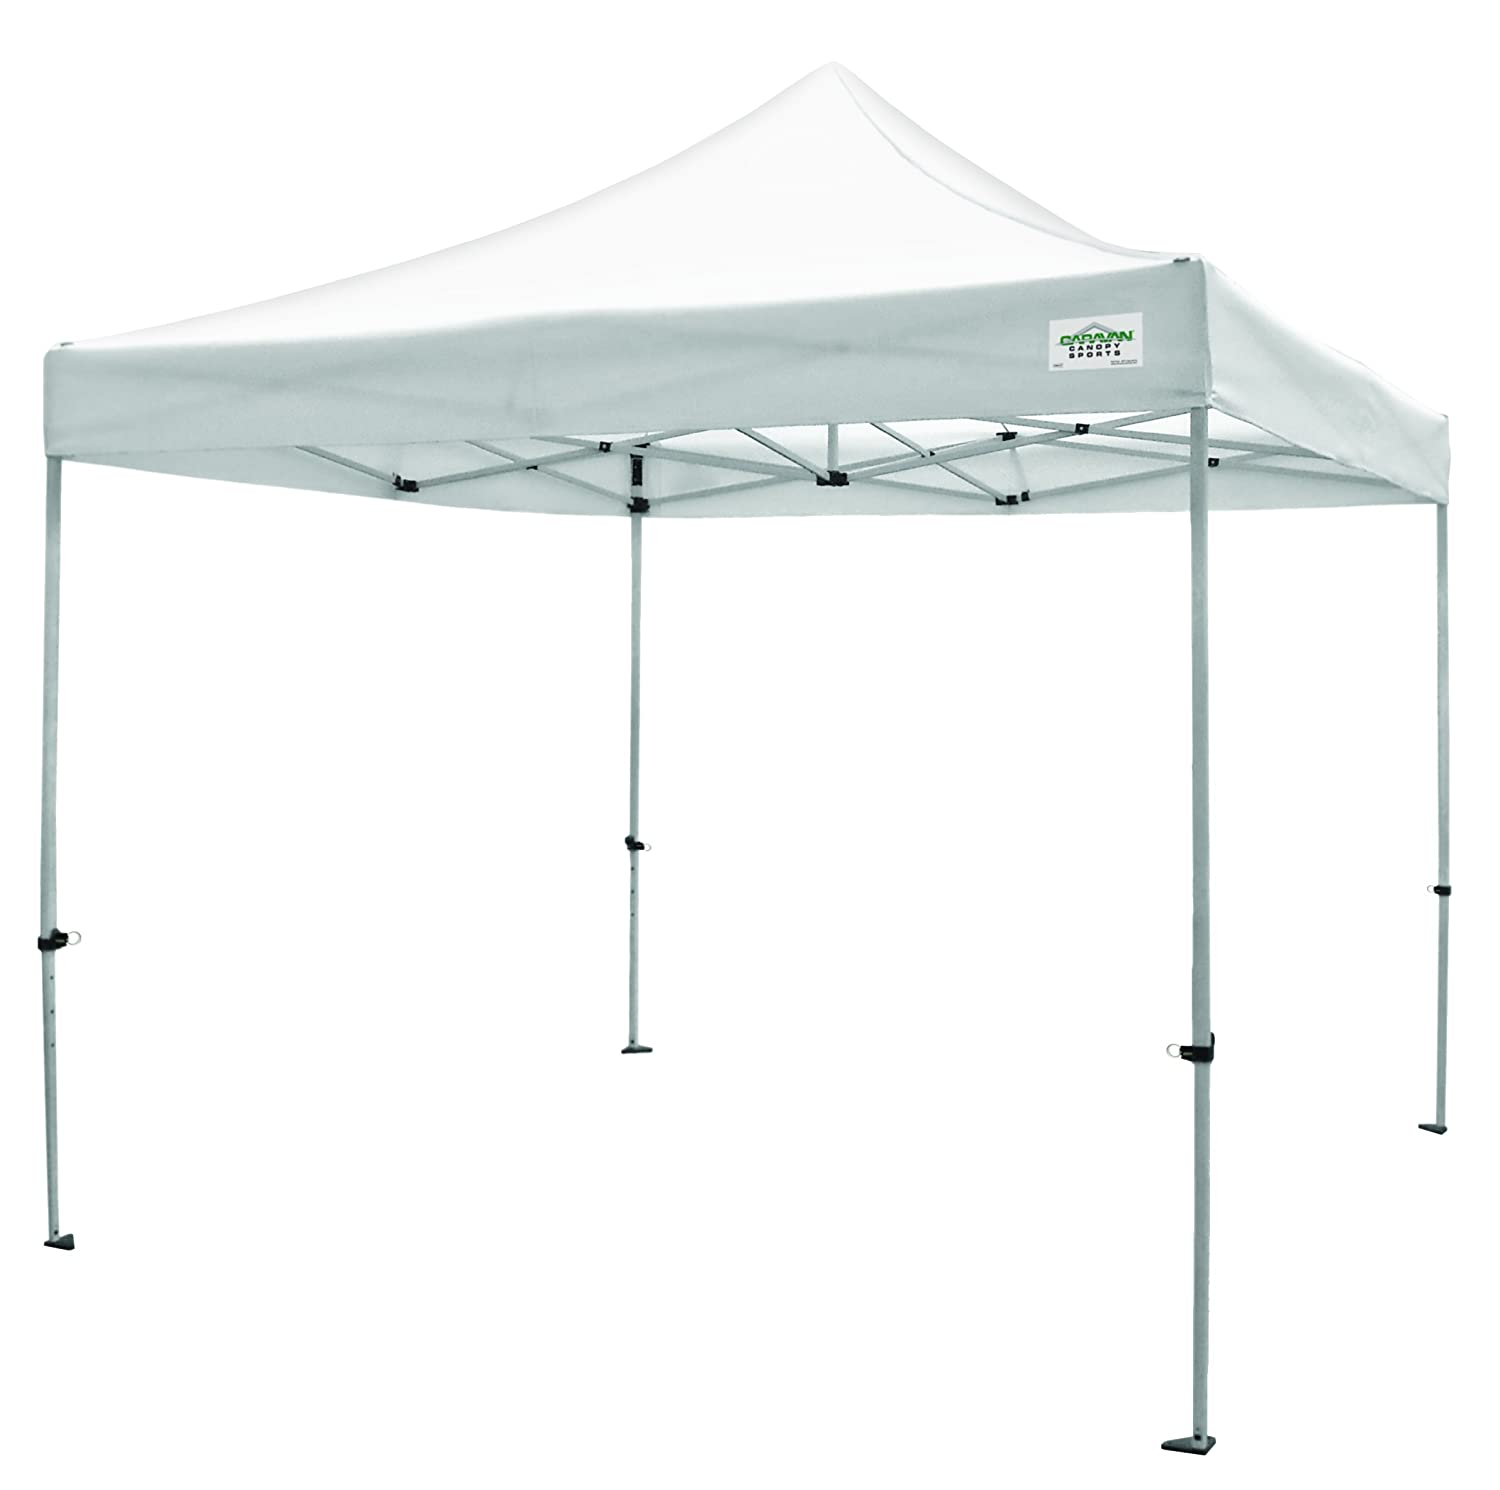 Amazon Com Caravan Canopy Titanshade  Foot Straight Leg Canopy White Sun Shelters Garden Outdoor